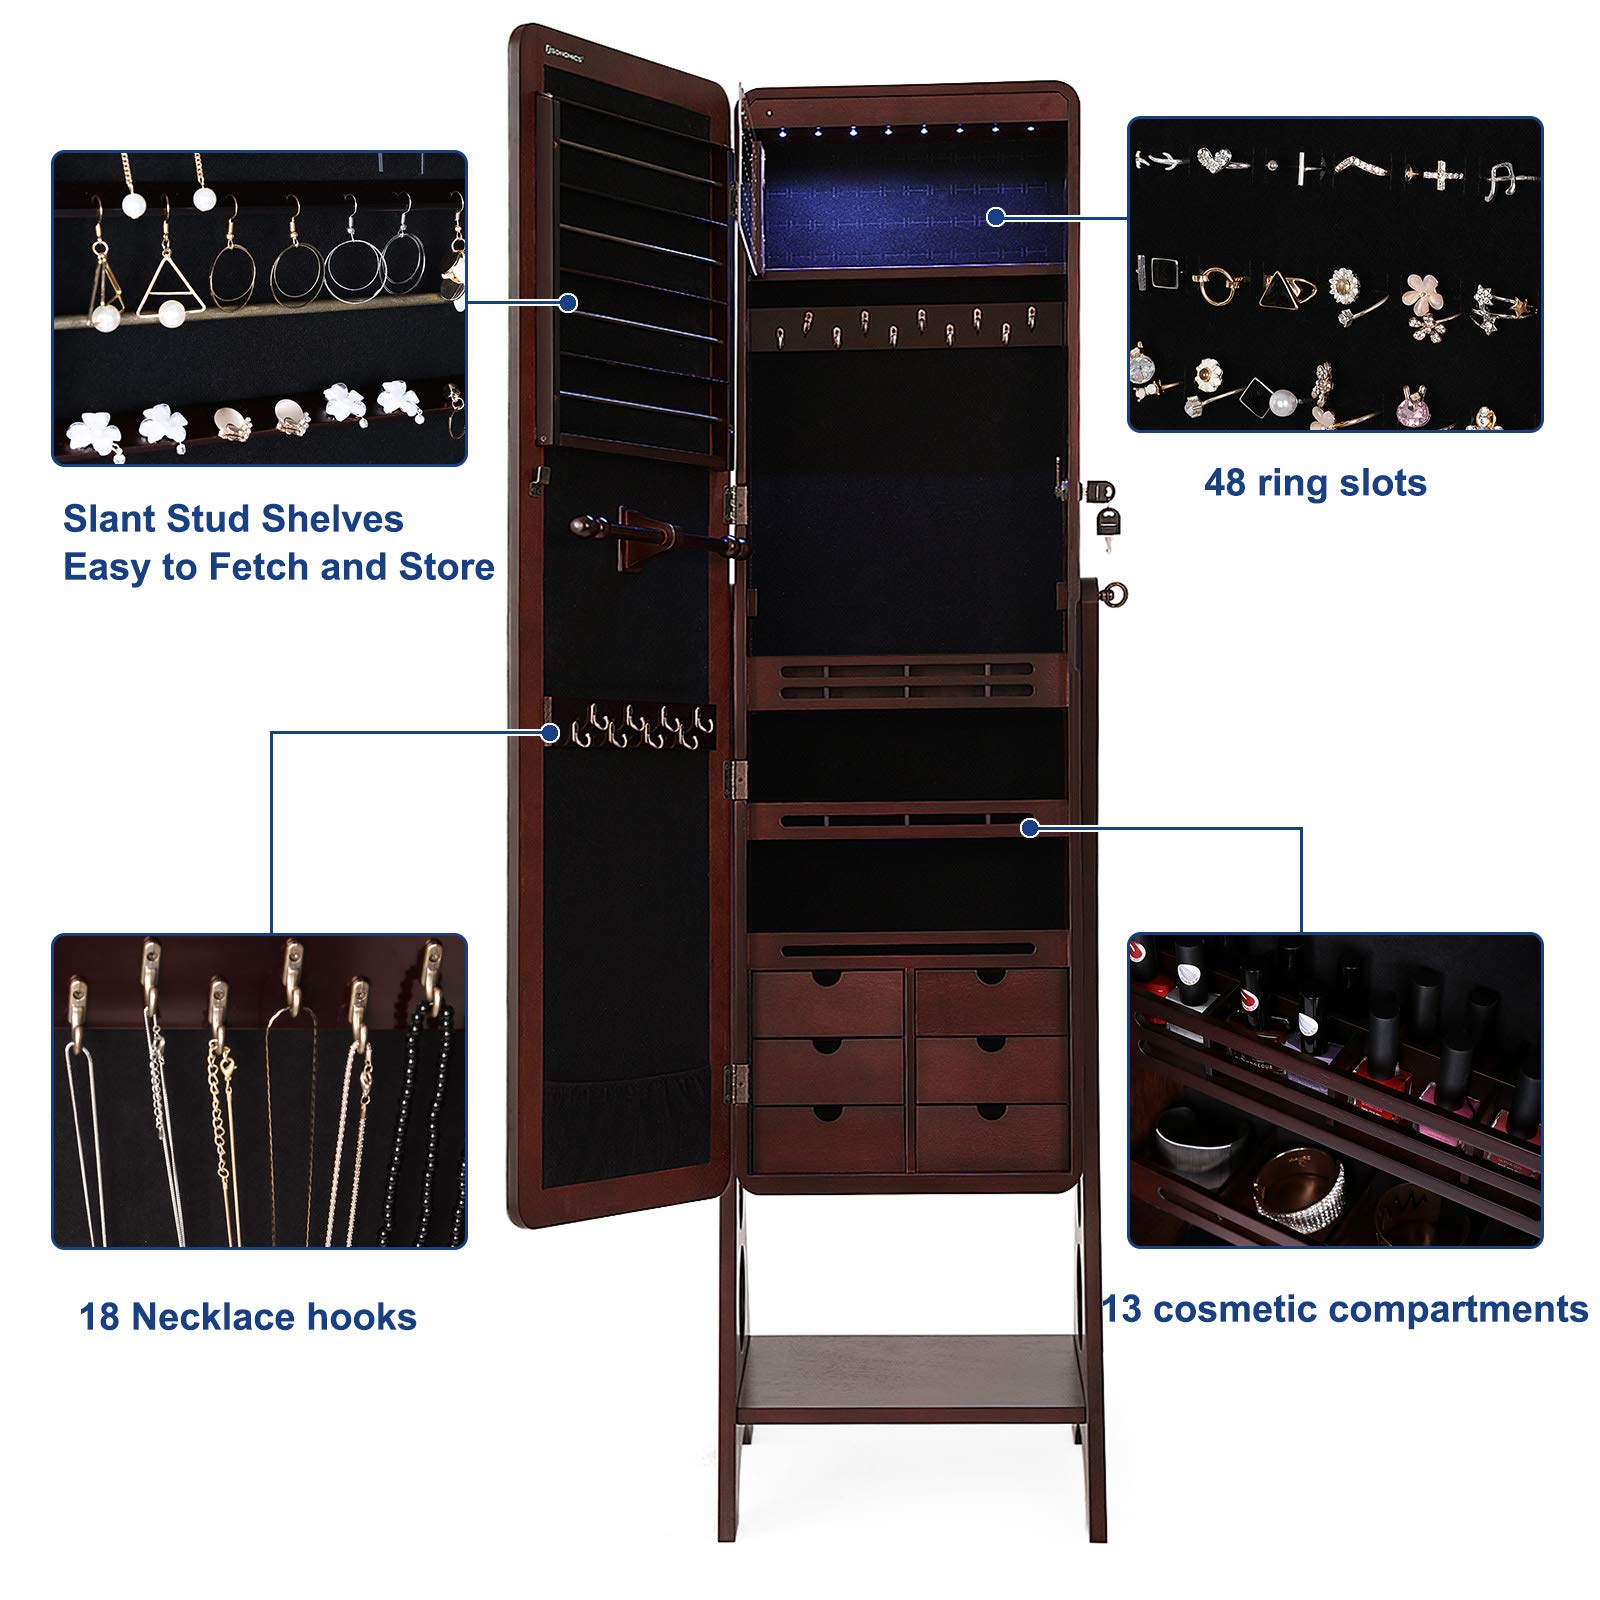 SONGMICS 8 LEDs Jewelry Cabinet Armoire with Beveled Edge Mirror, Gorgeous Jewelry Organizer Large Capacity Brown Patented UJJC89K by SONGMICS (Image #5)